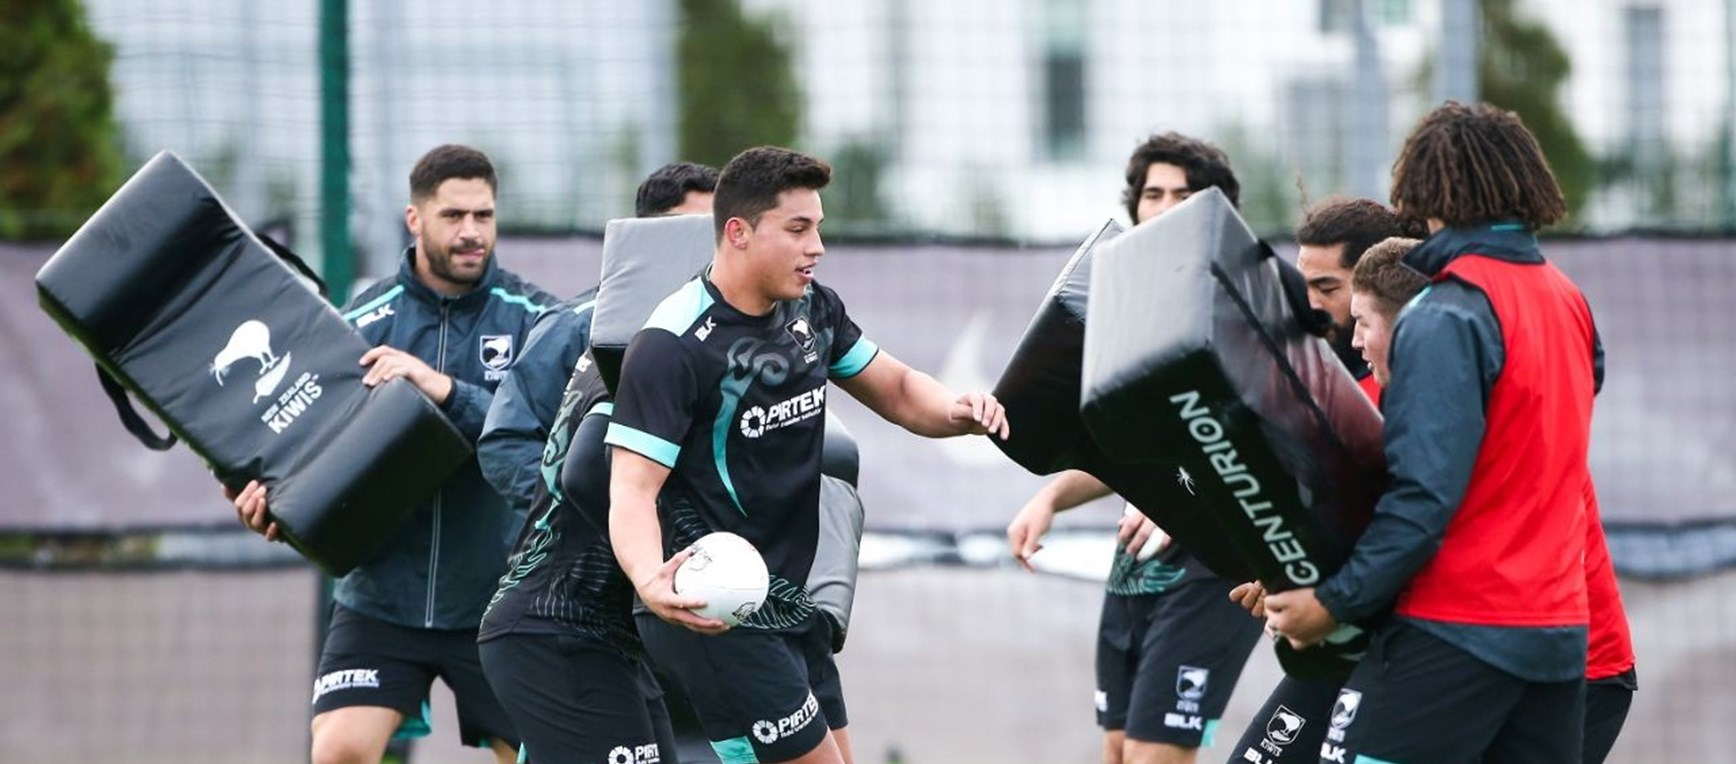 Gallery: Kiwis Training